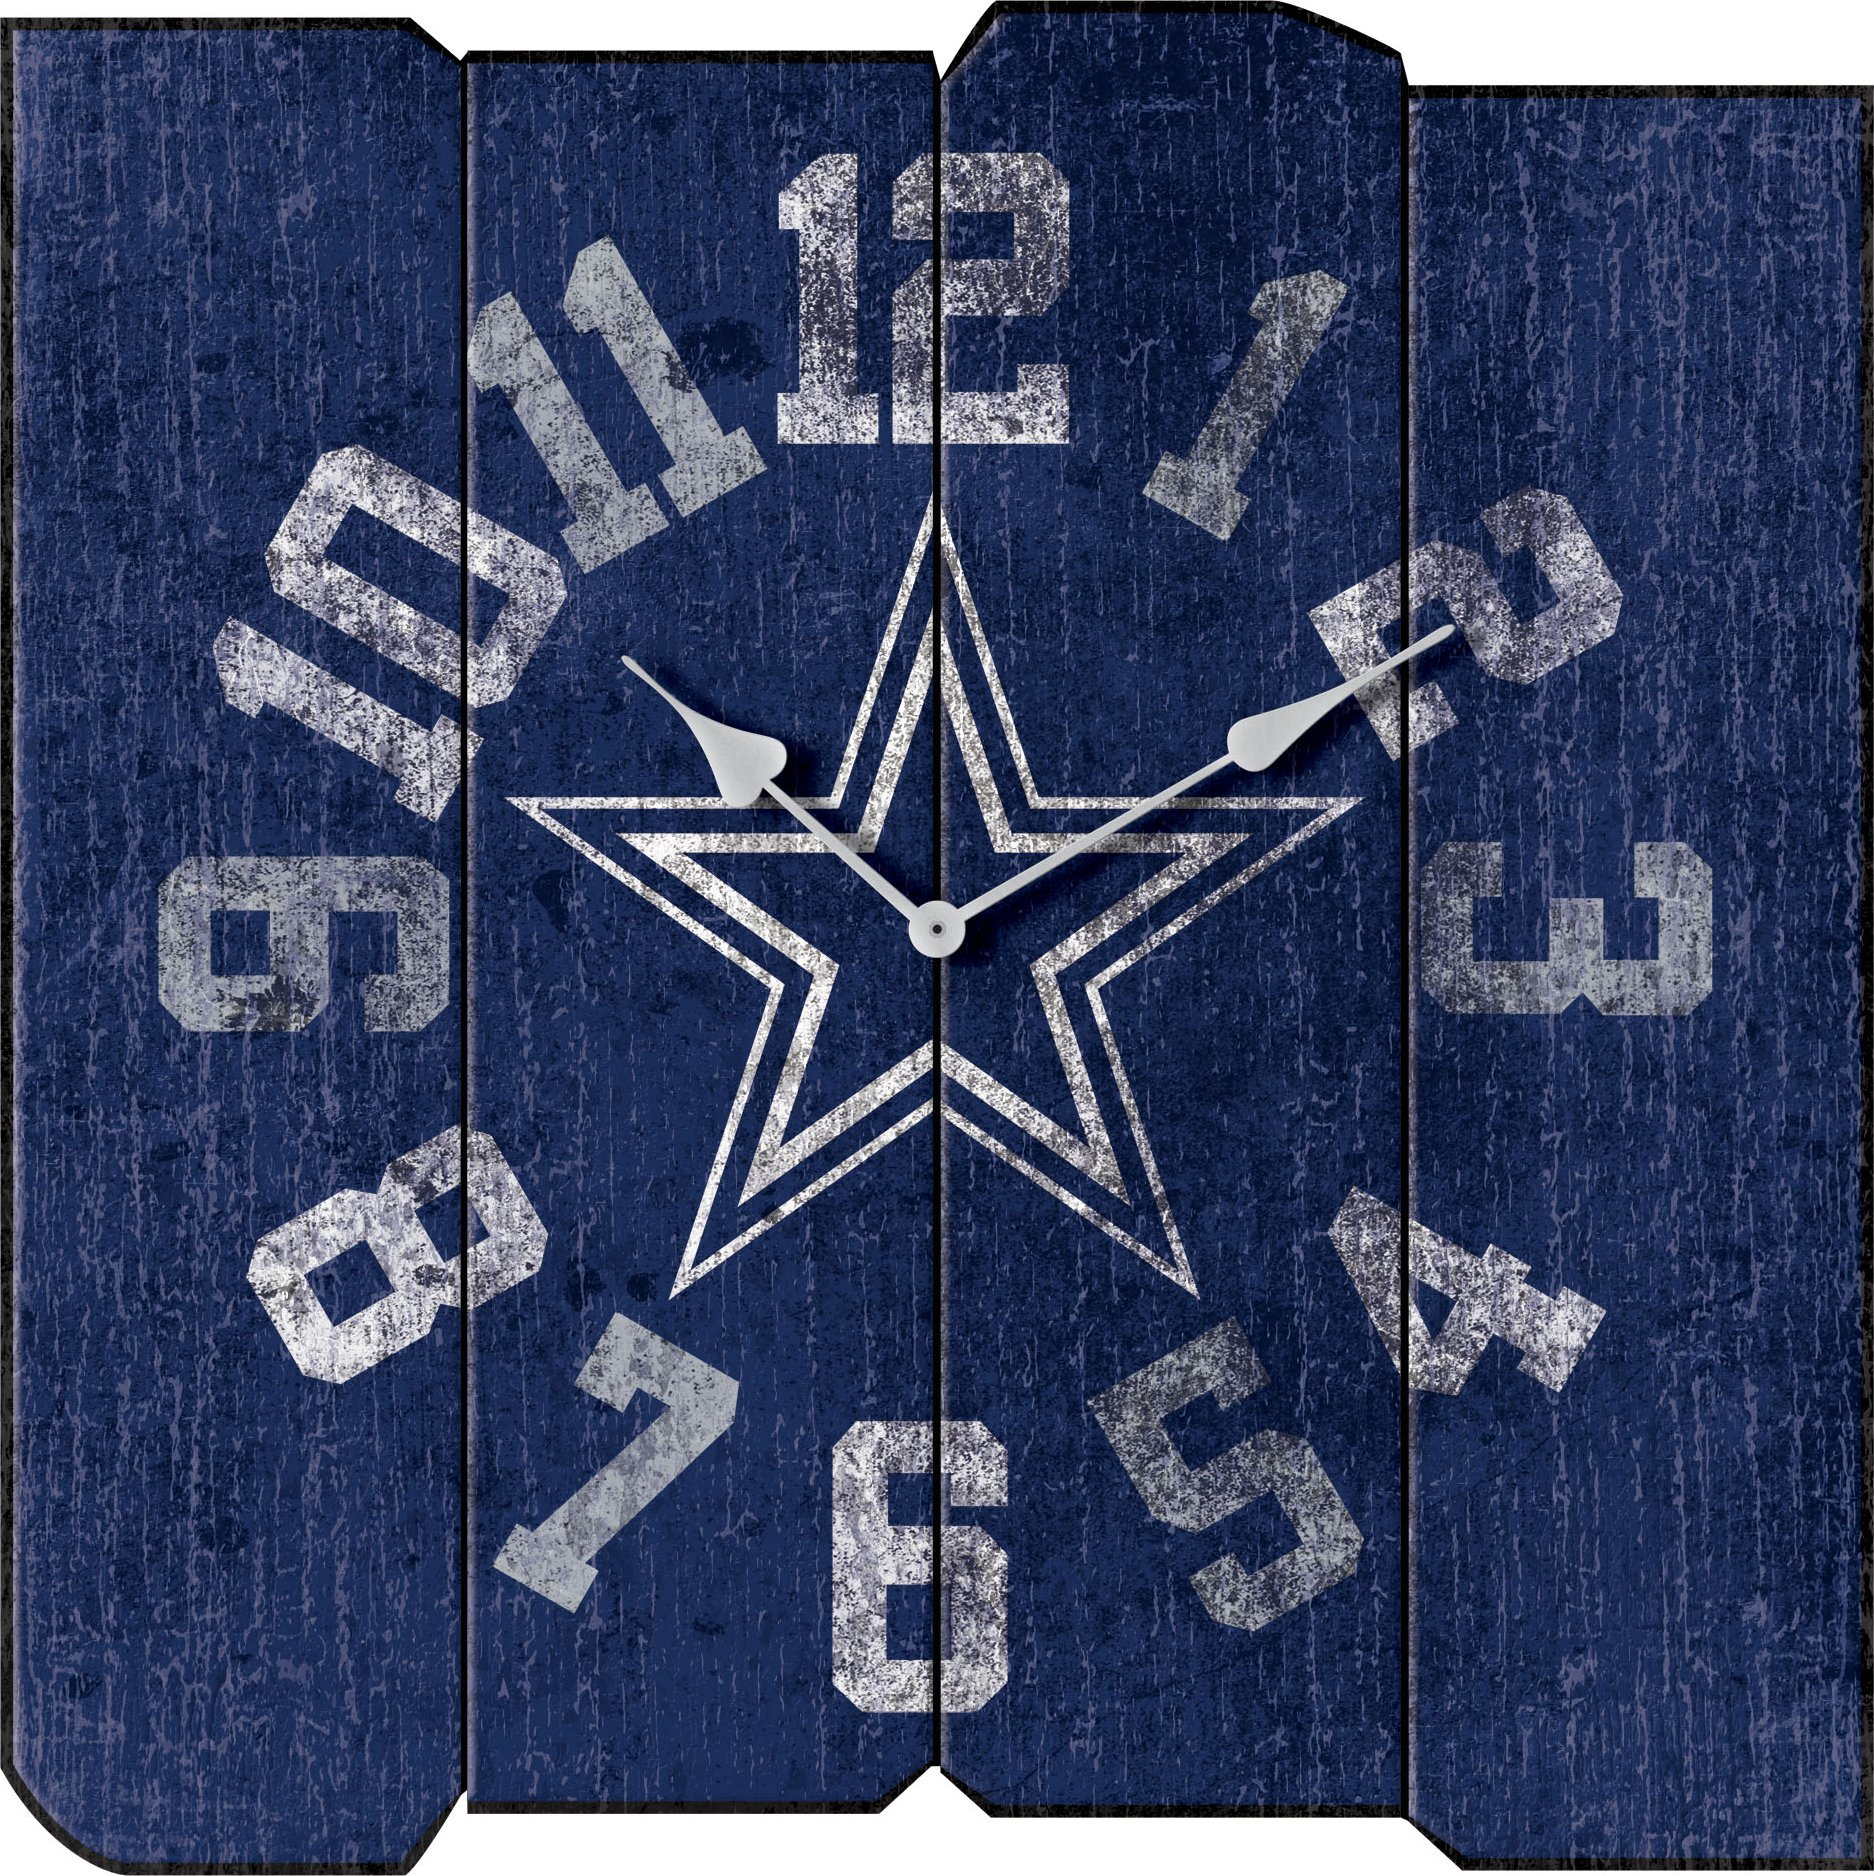 Imperial Officially Licensed NFL Merchandise: Vintage Square Clock, Dallas Cowboys by Imperial